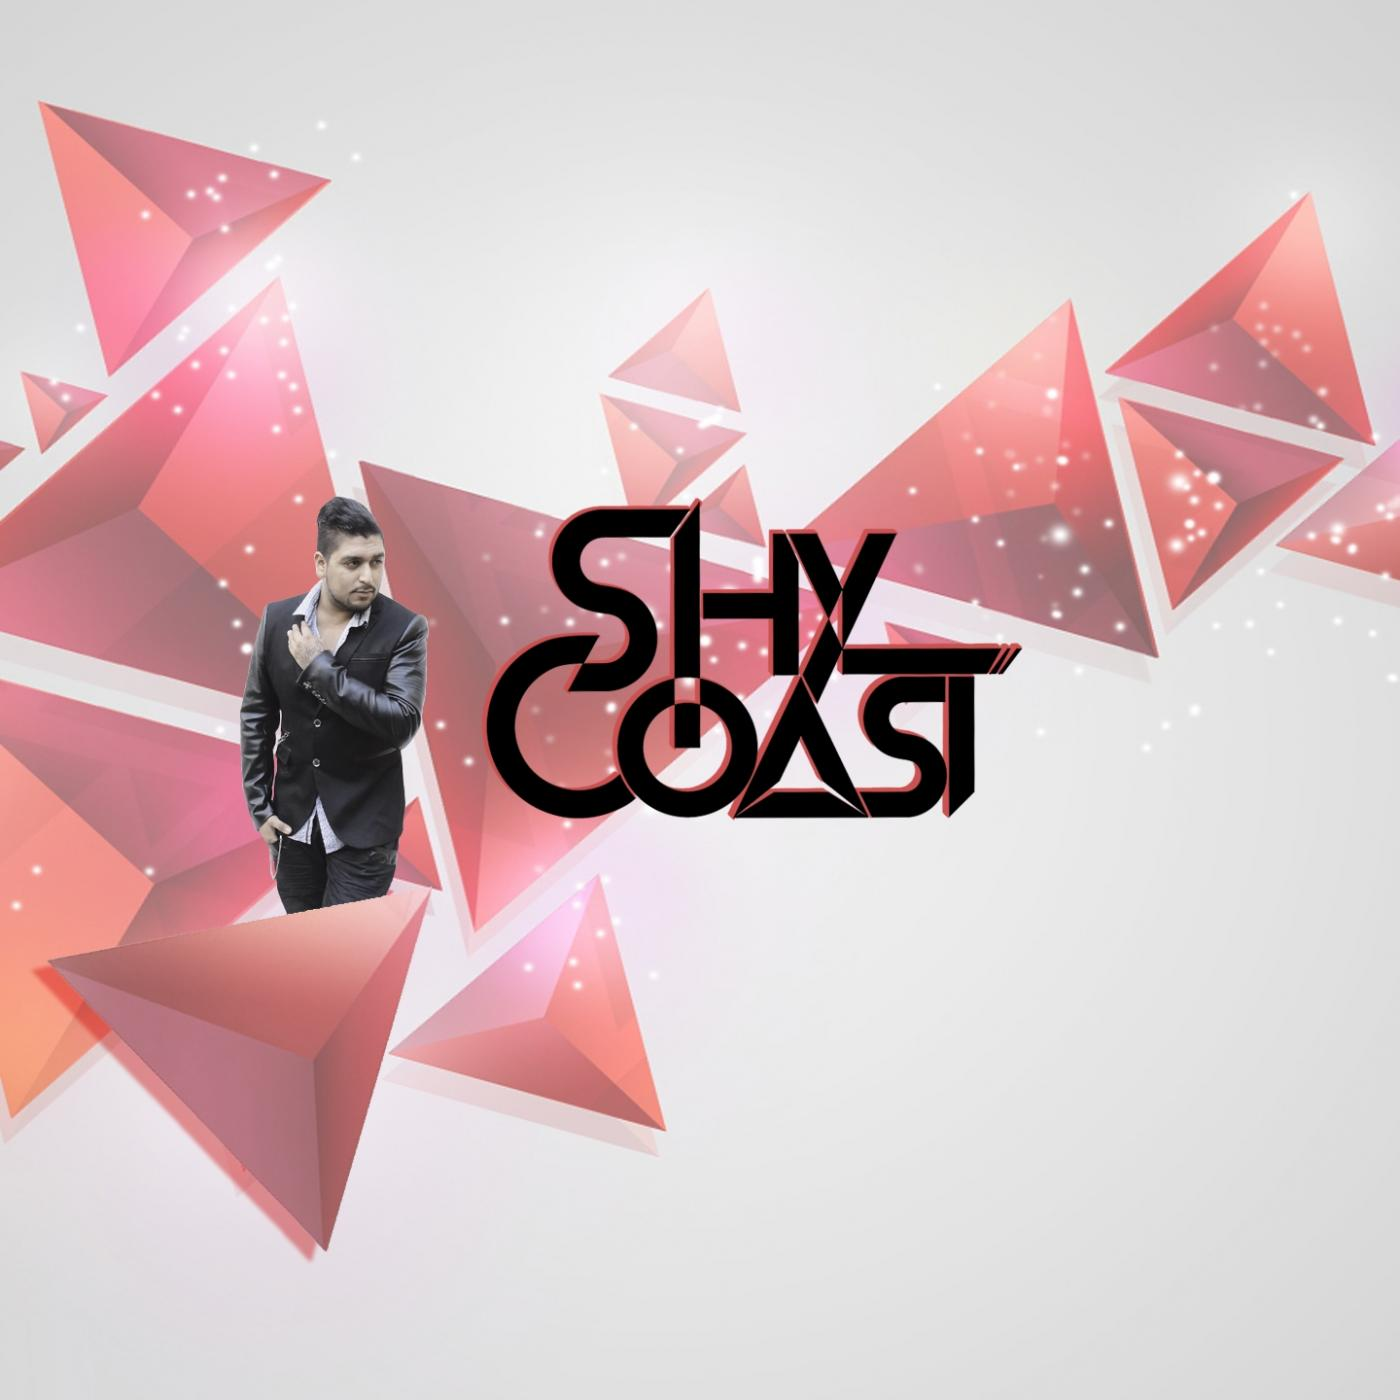 Shy-Coast Officiel